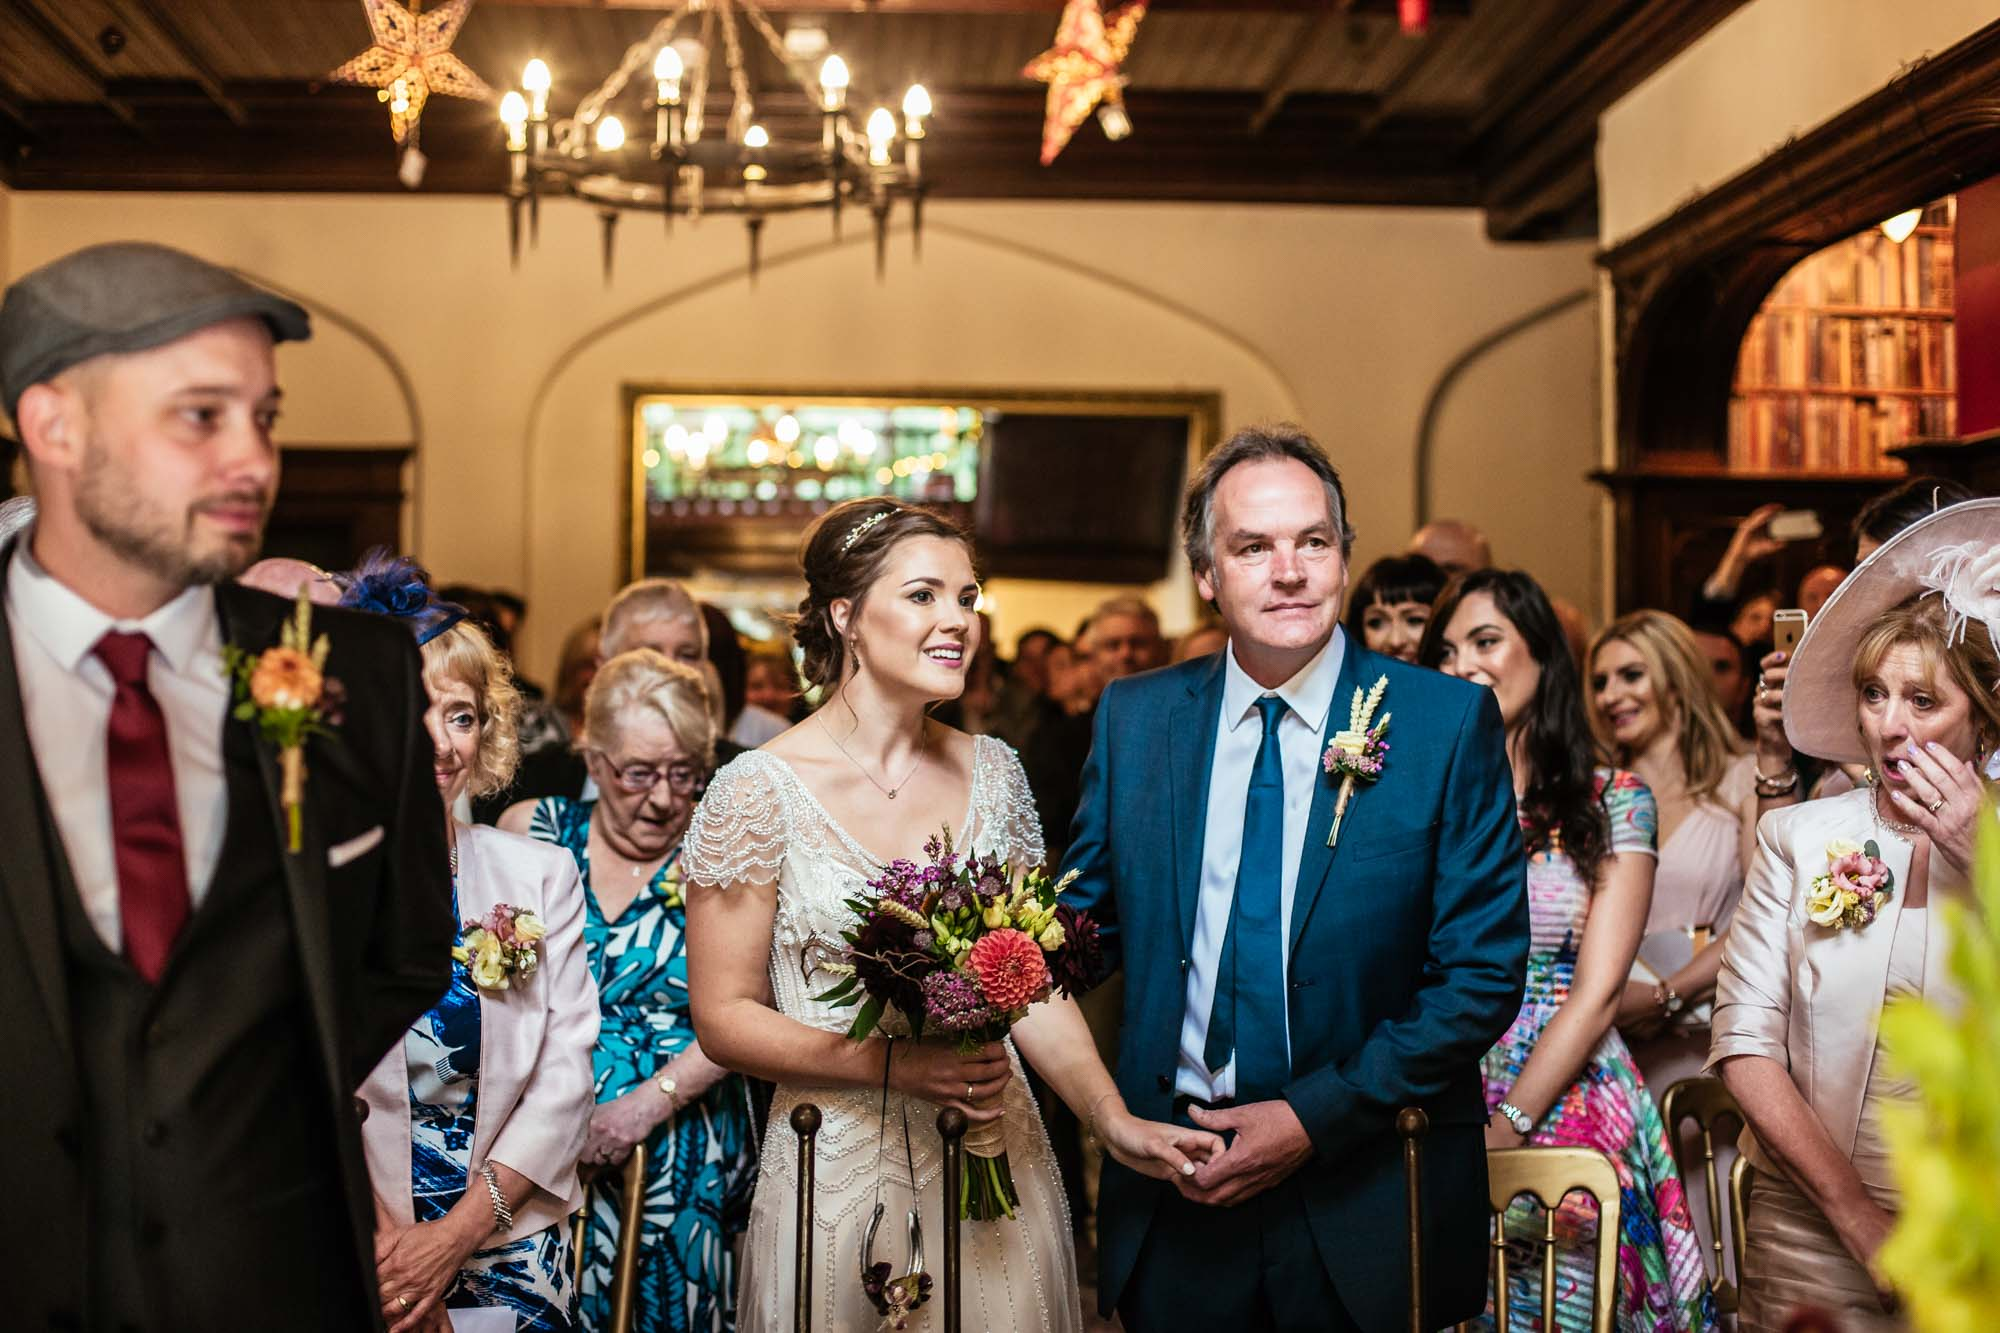 Hargate Hall Wedding Ceremonies